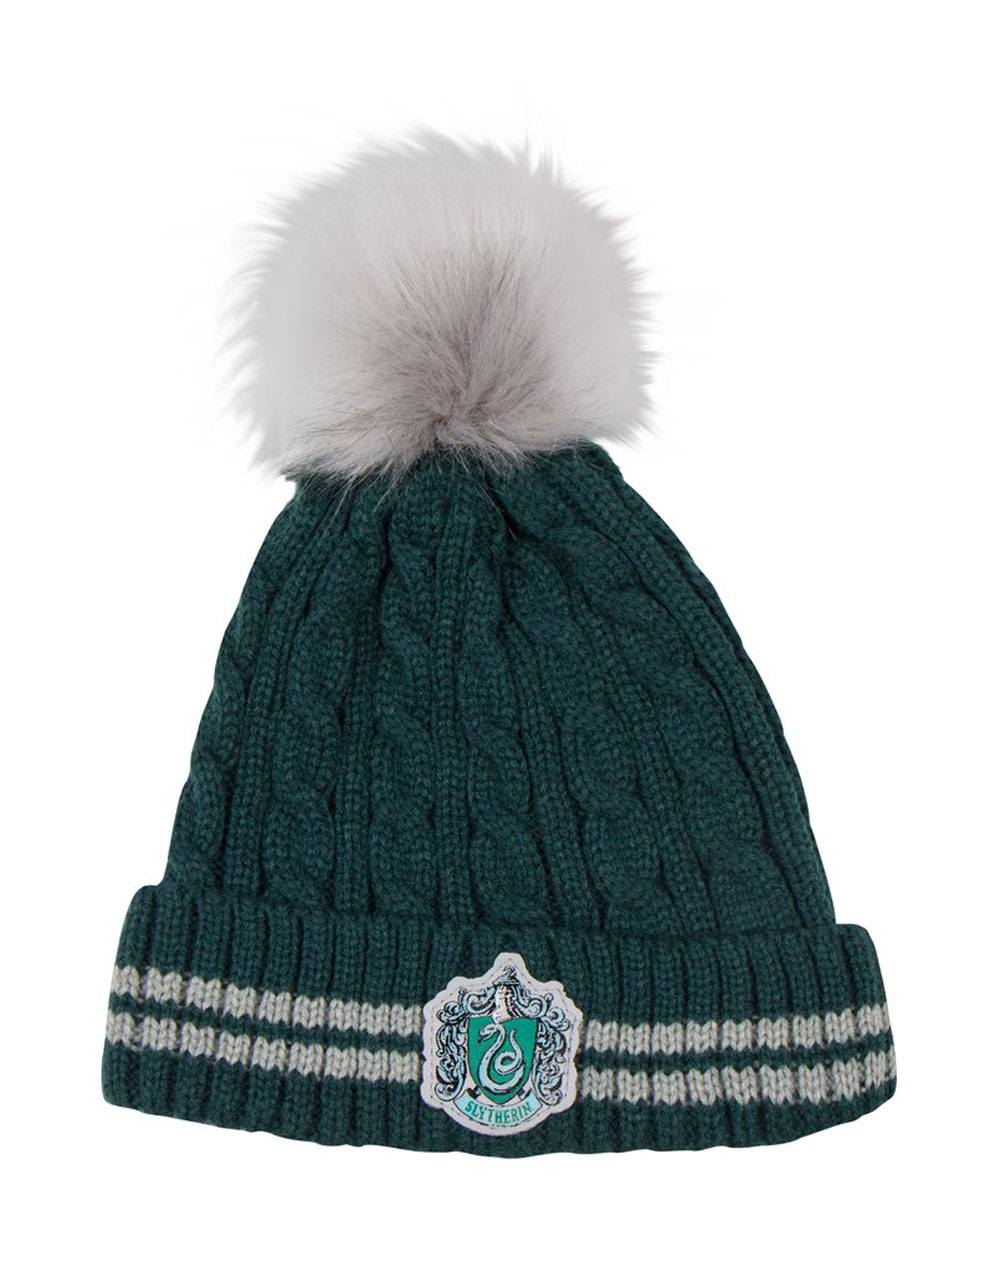 Slytherin Beanie Harry Potter  2fab1080f65